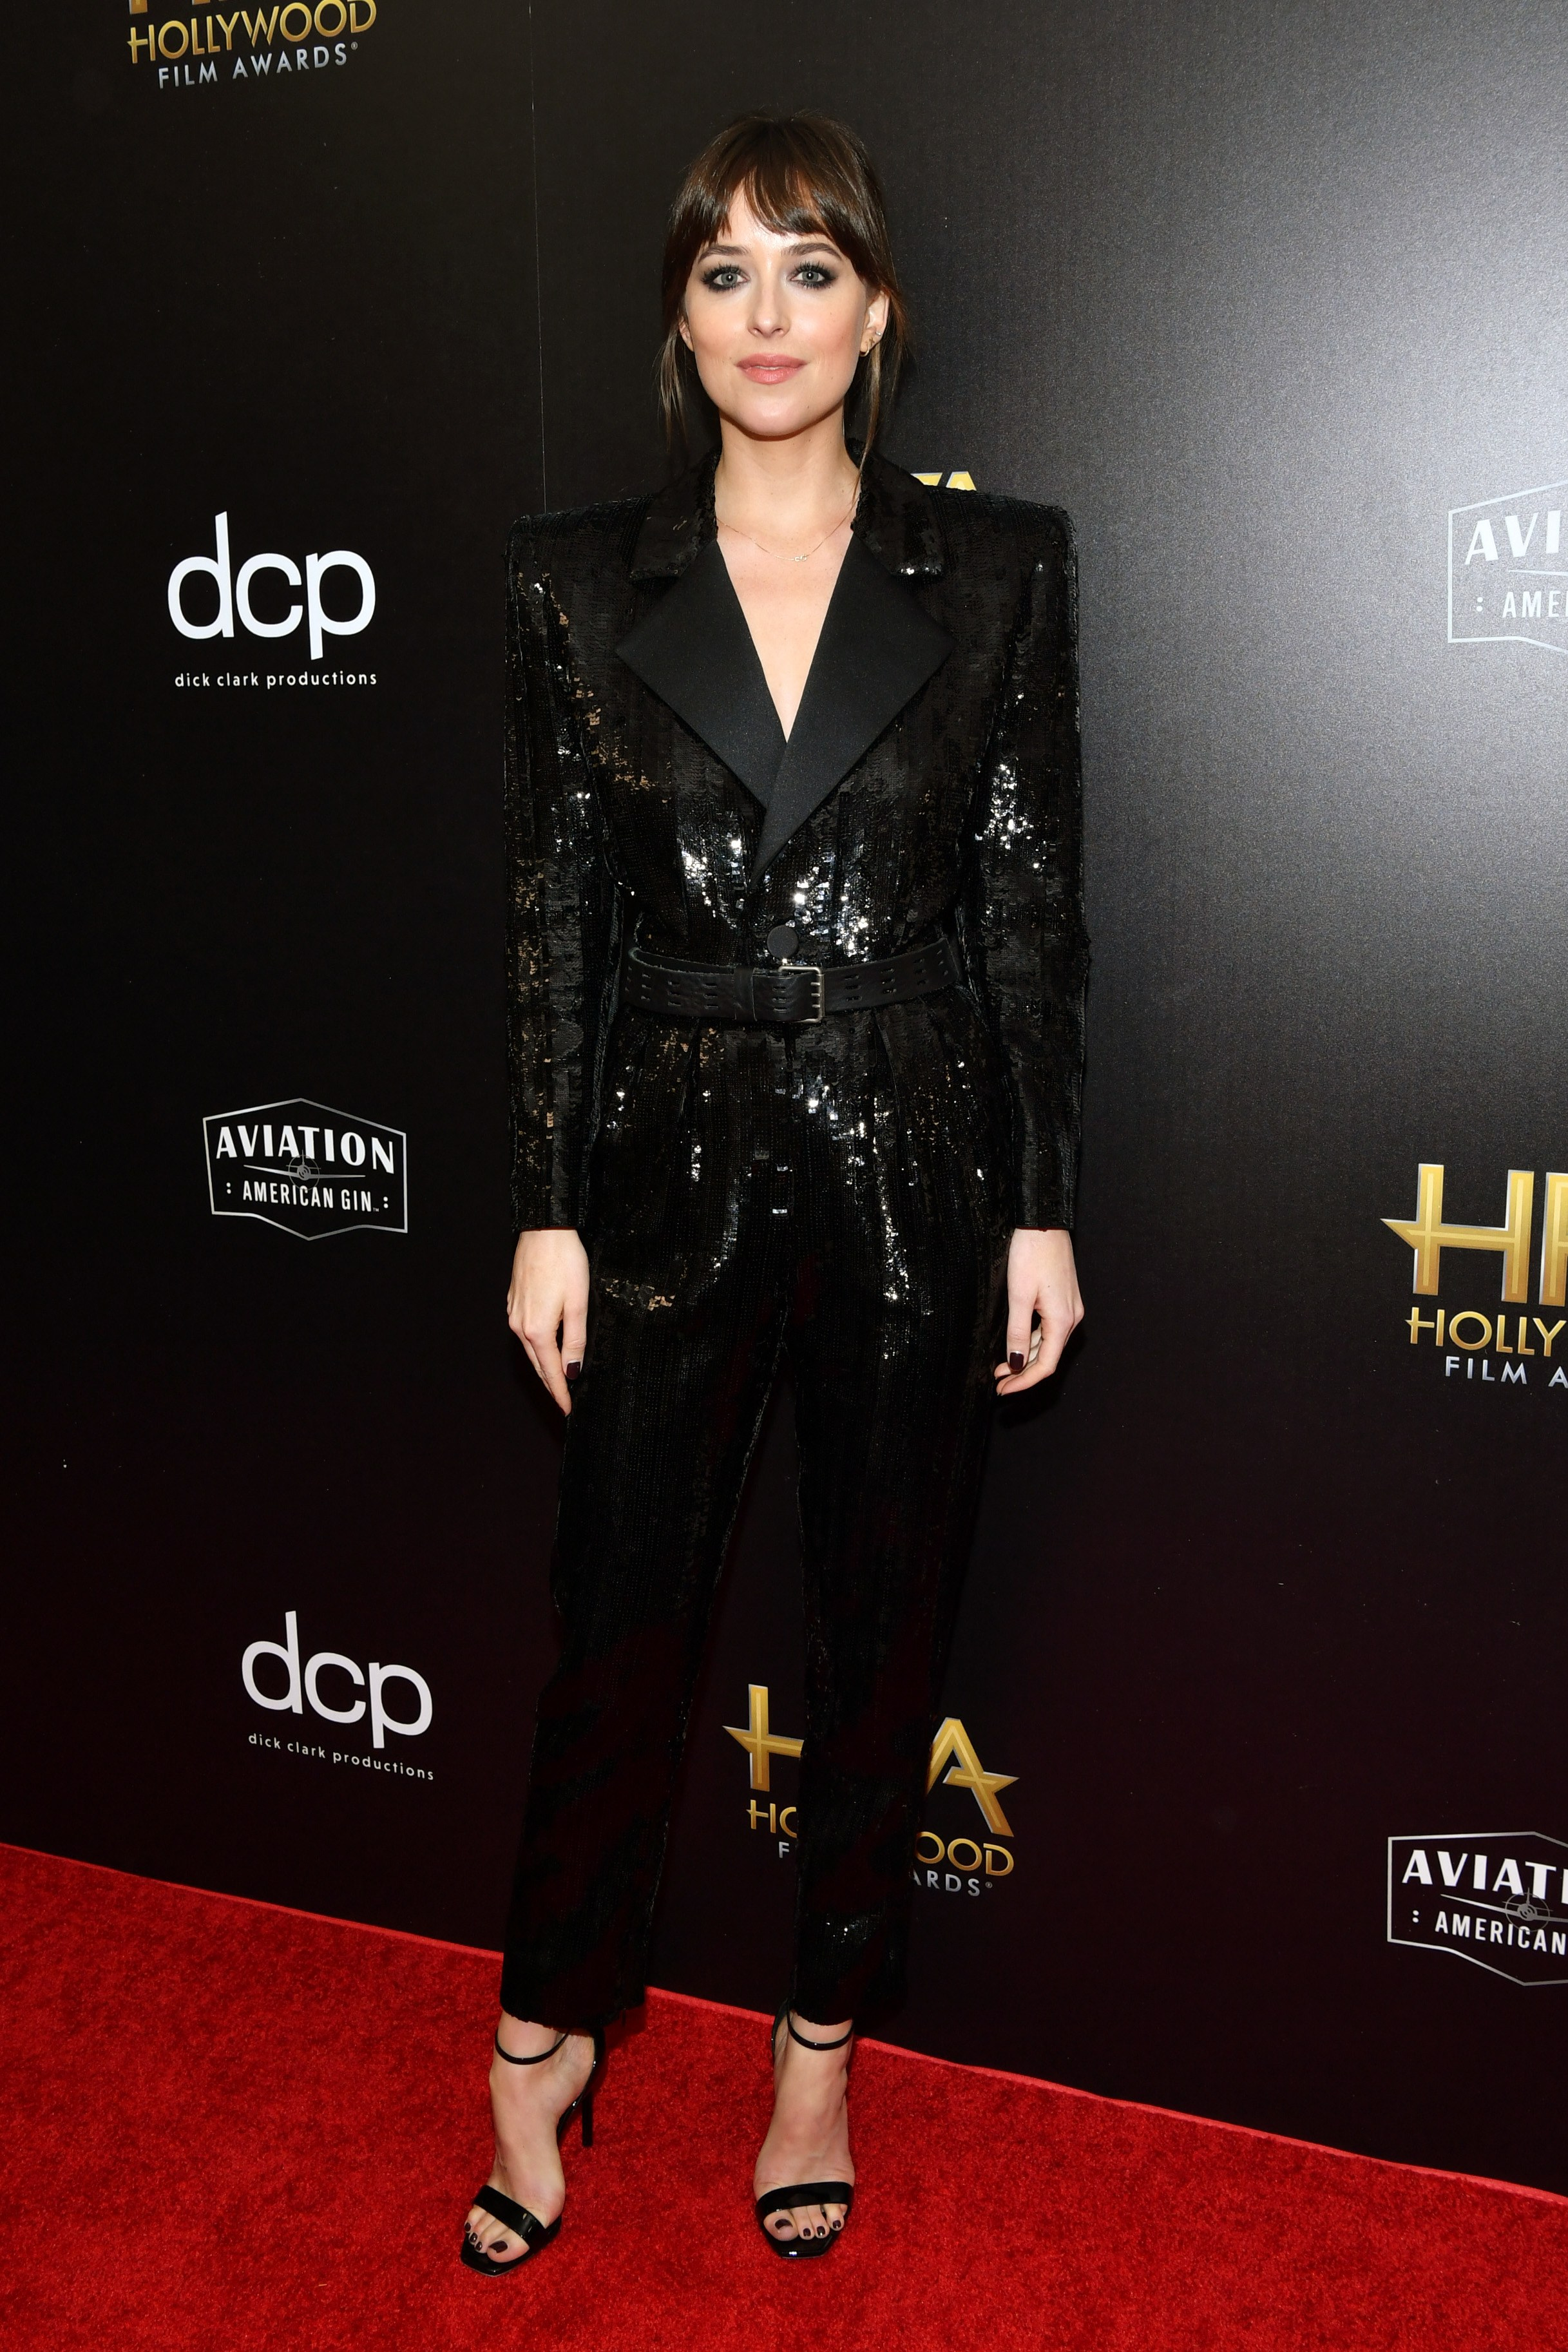 dakota-johnson-in-saint-laurent-the-2019-hollywood-film-awards